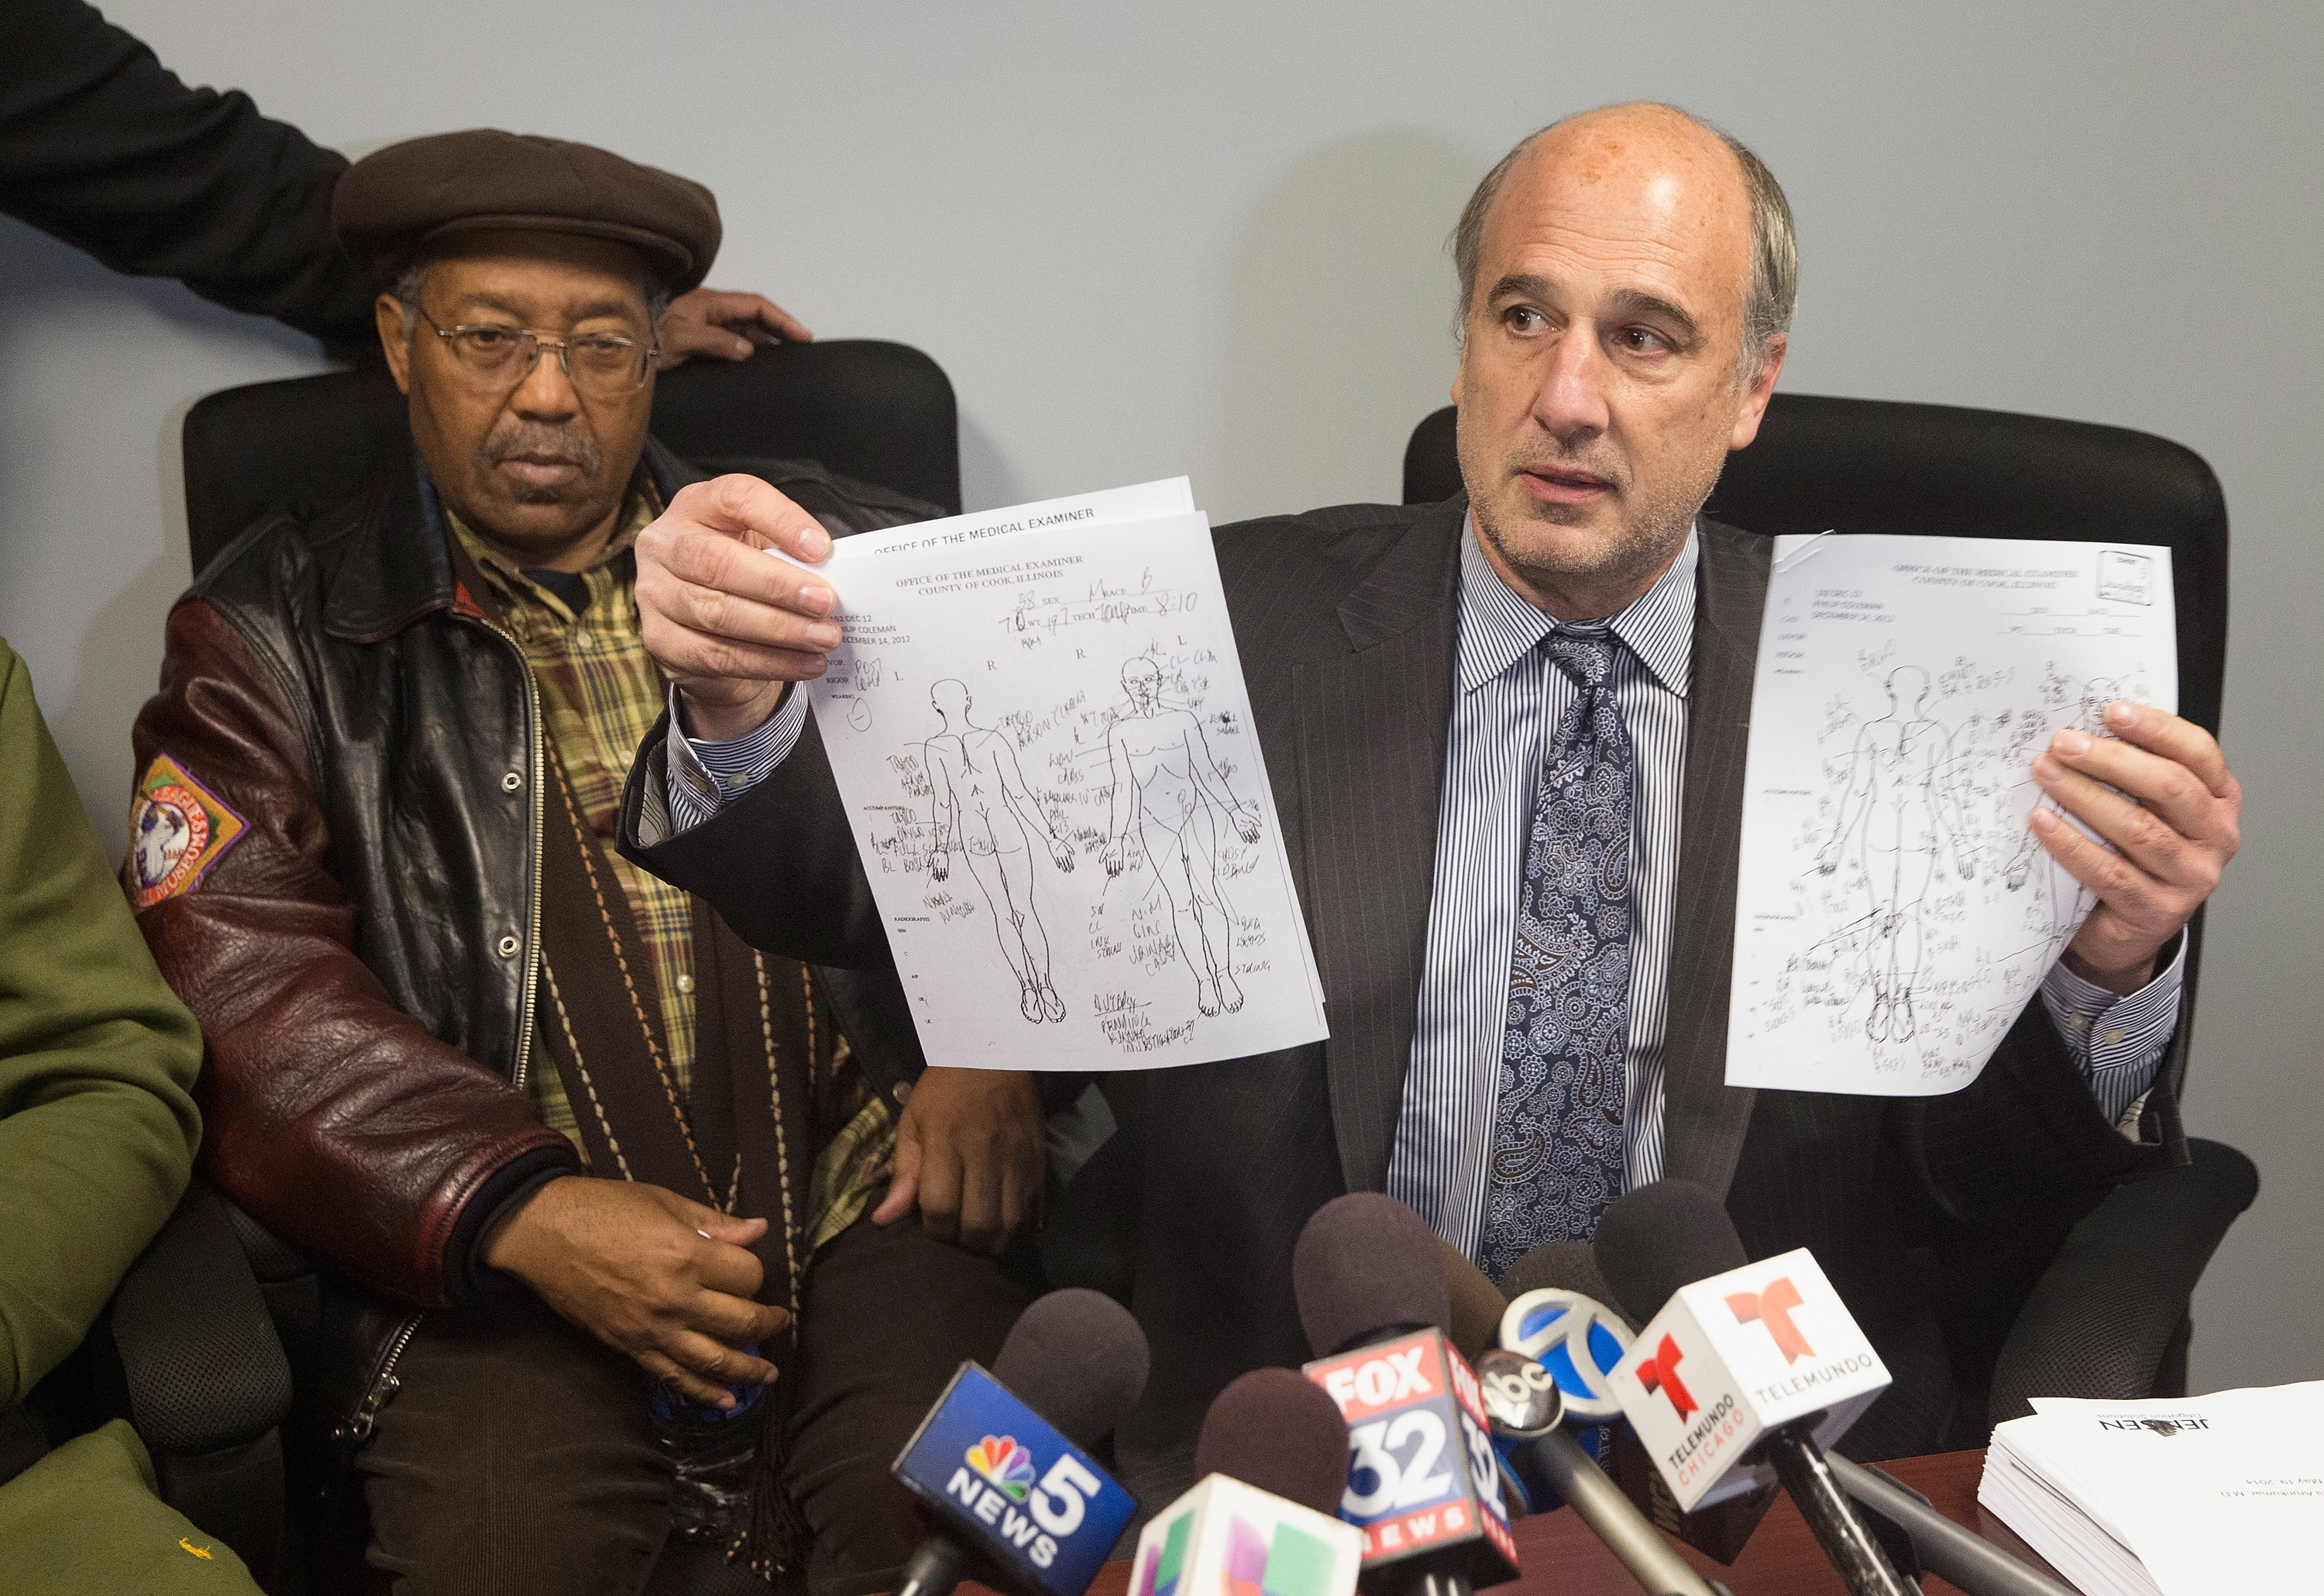 Family And Lawyer Representing Phillip Coleman Hold News Conference After Chicago PD Video Released